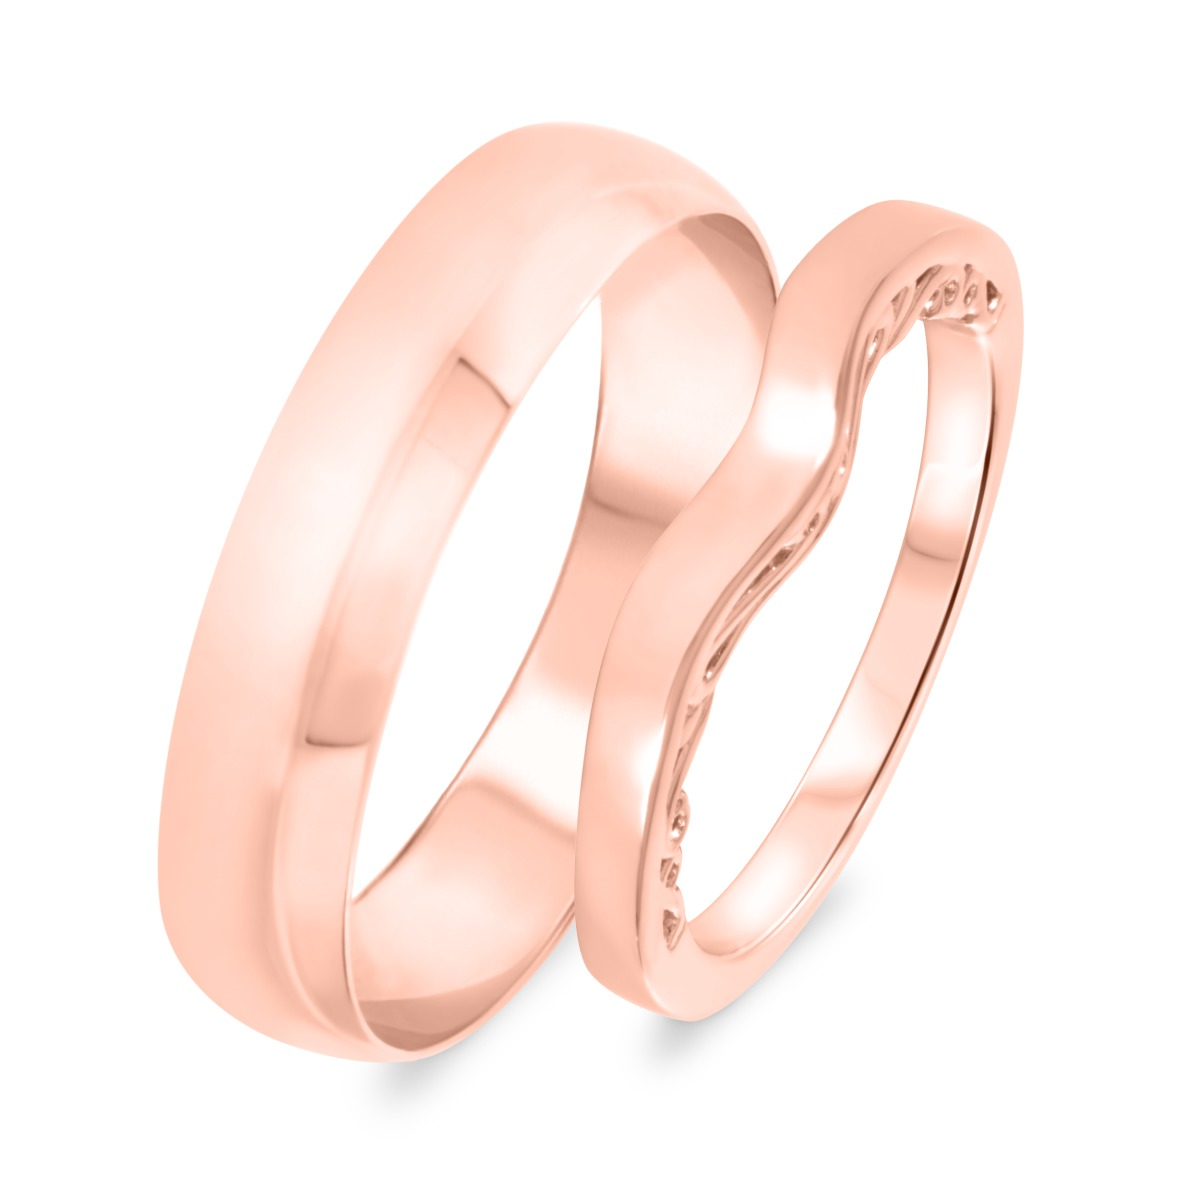 Wedding Band Set 14K Rose Gold